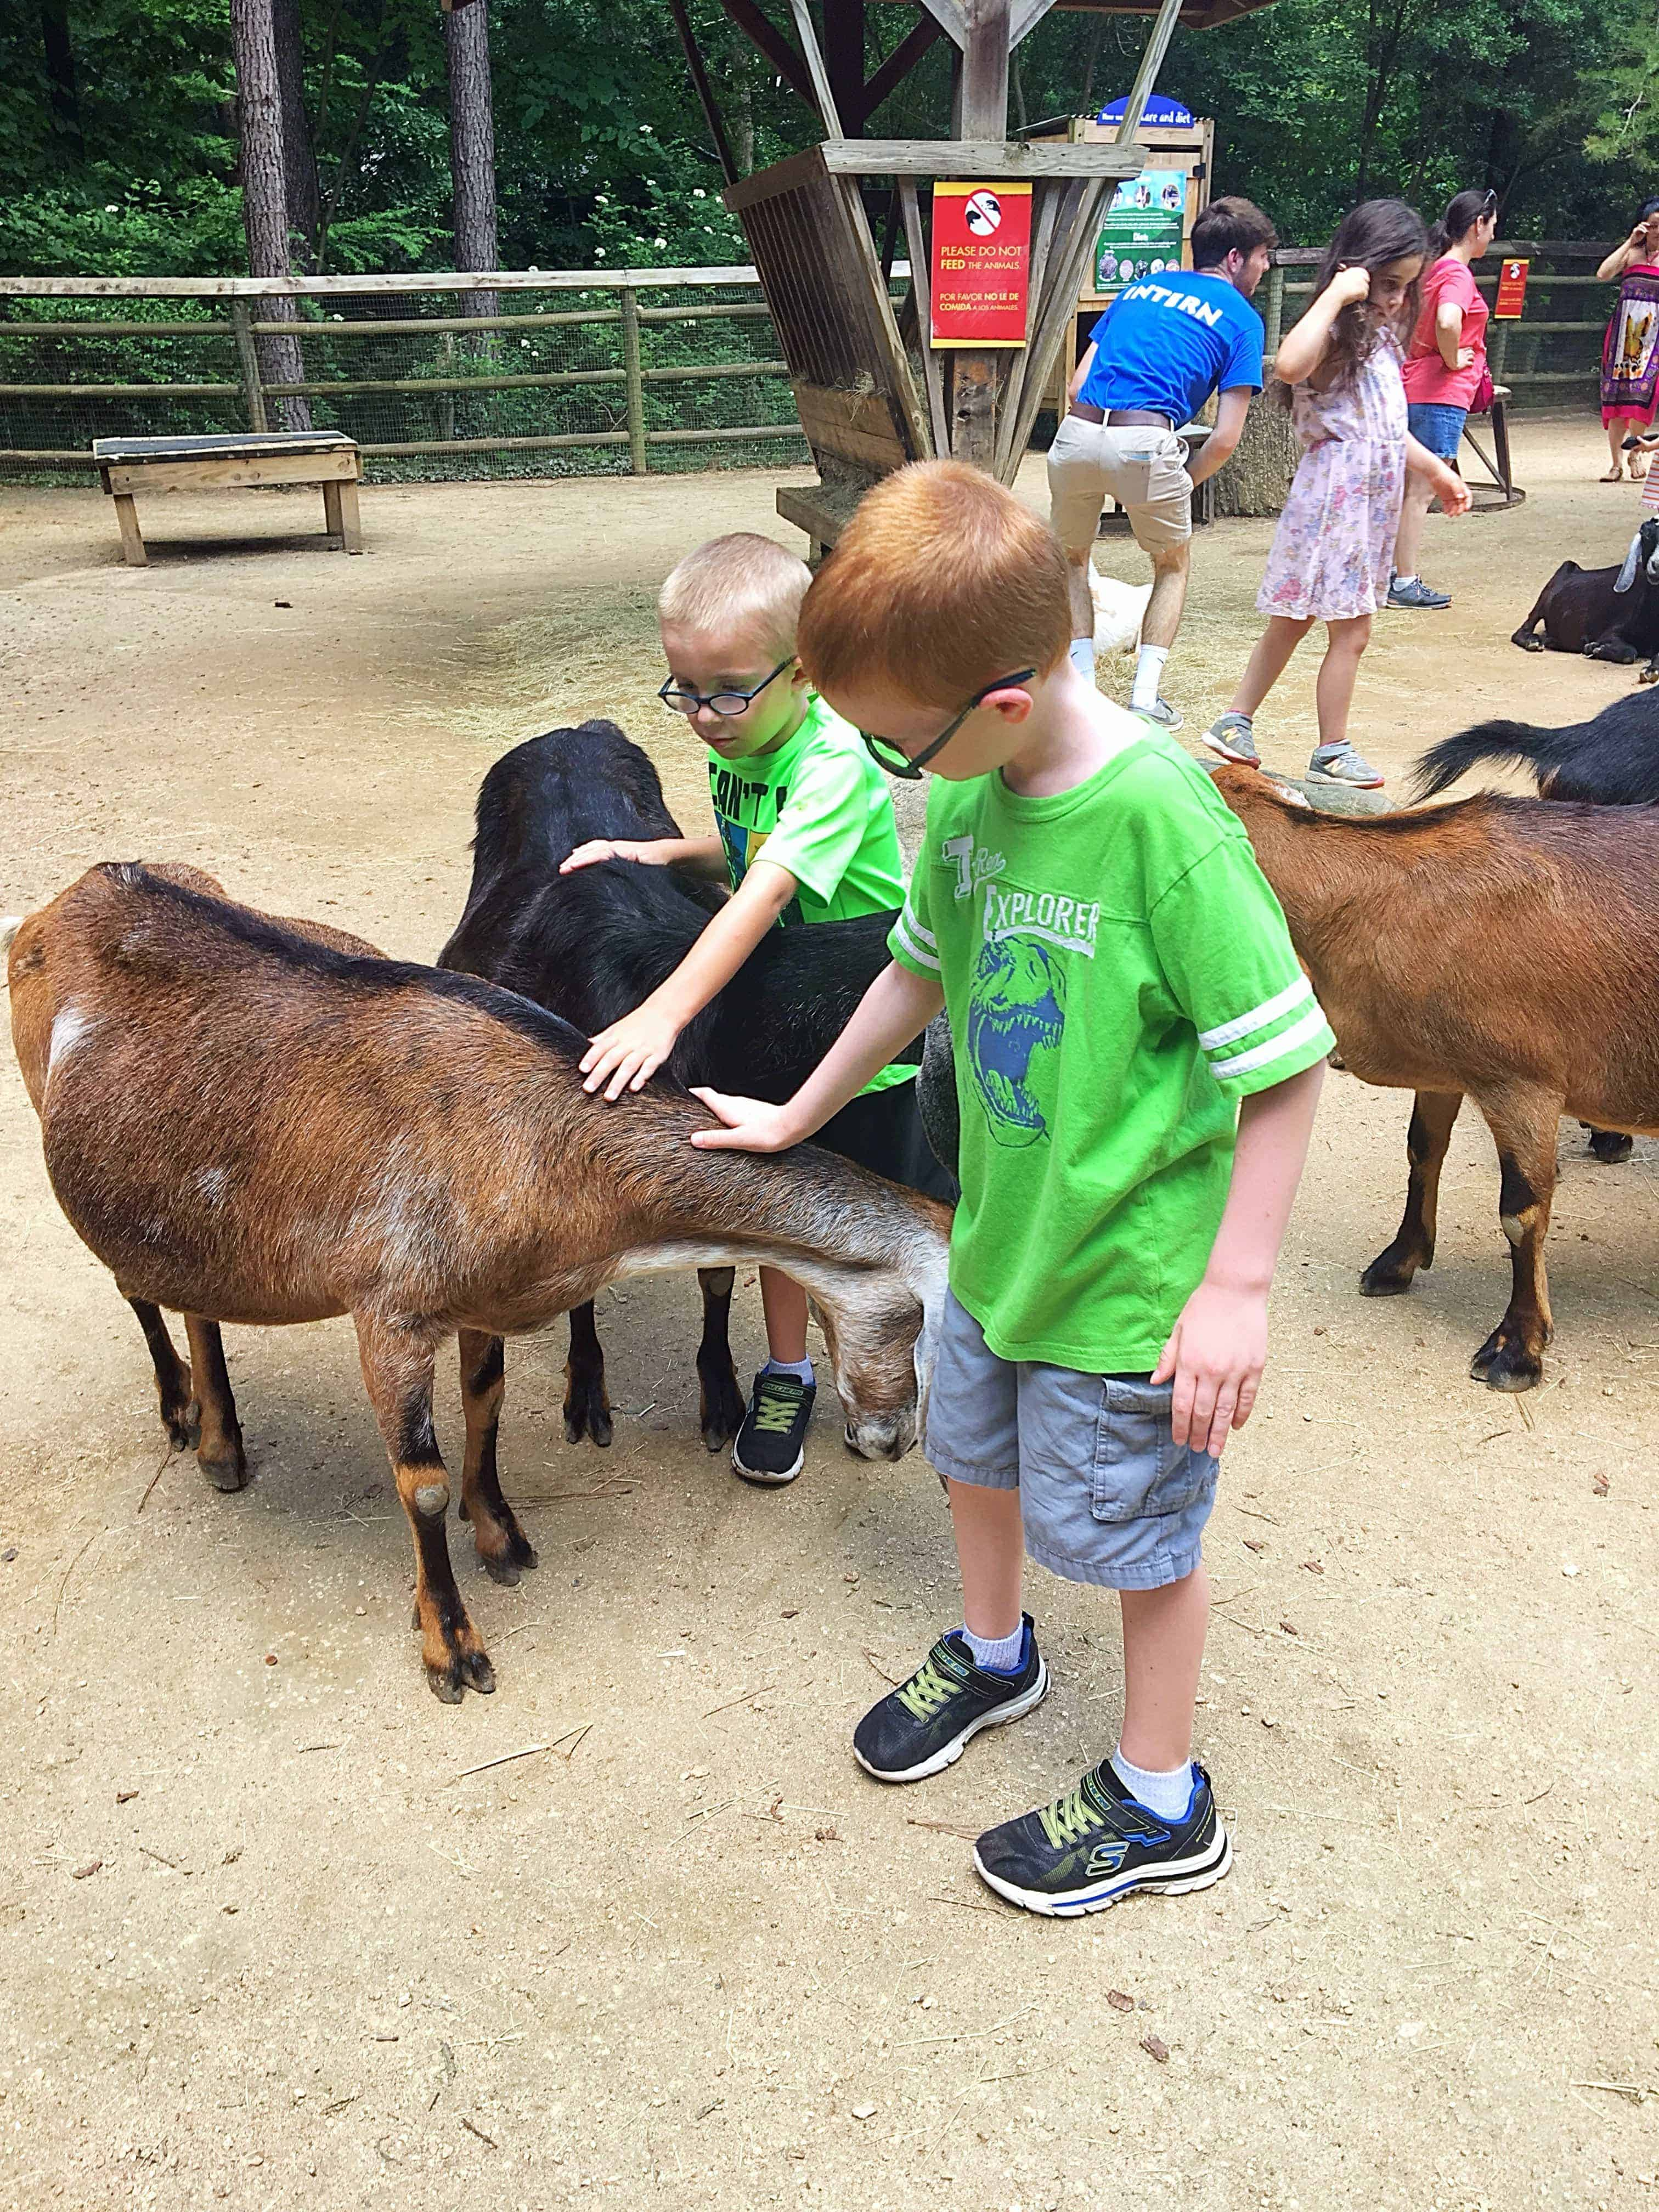 Heading to Zoo Atlanta? Then check out my Smart Tips for Visiting Zoo Atlanta with helpful tips like the best time to visit, ways to save money on tickets, parking tips, and more!  #zooatlanta #atlantageorgia #familyvacation